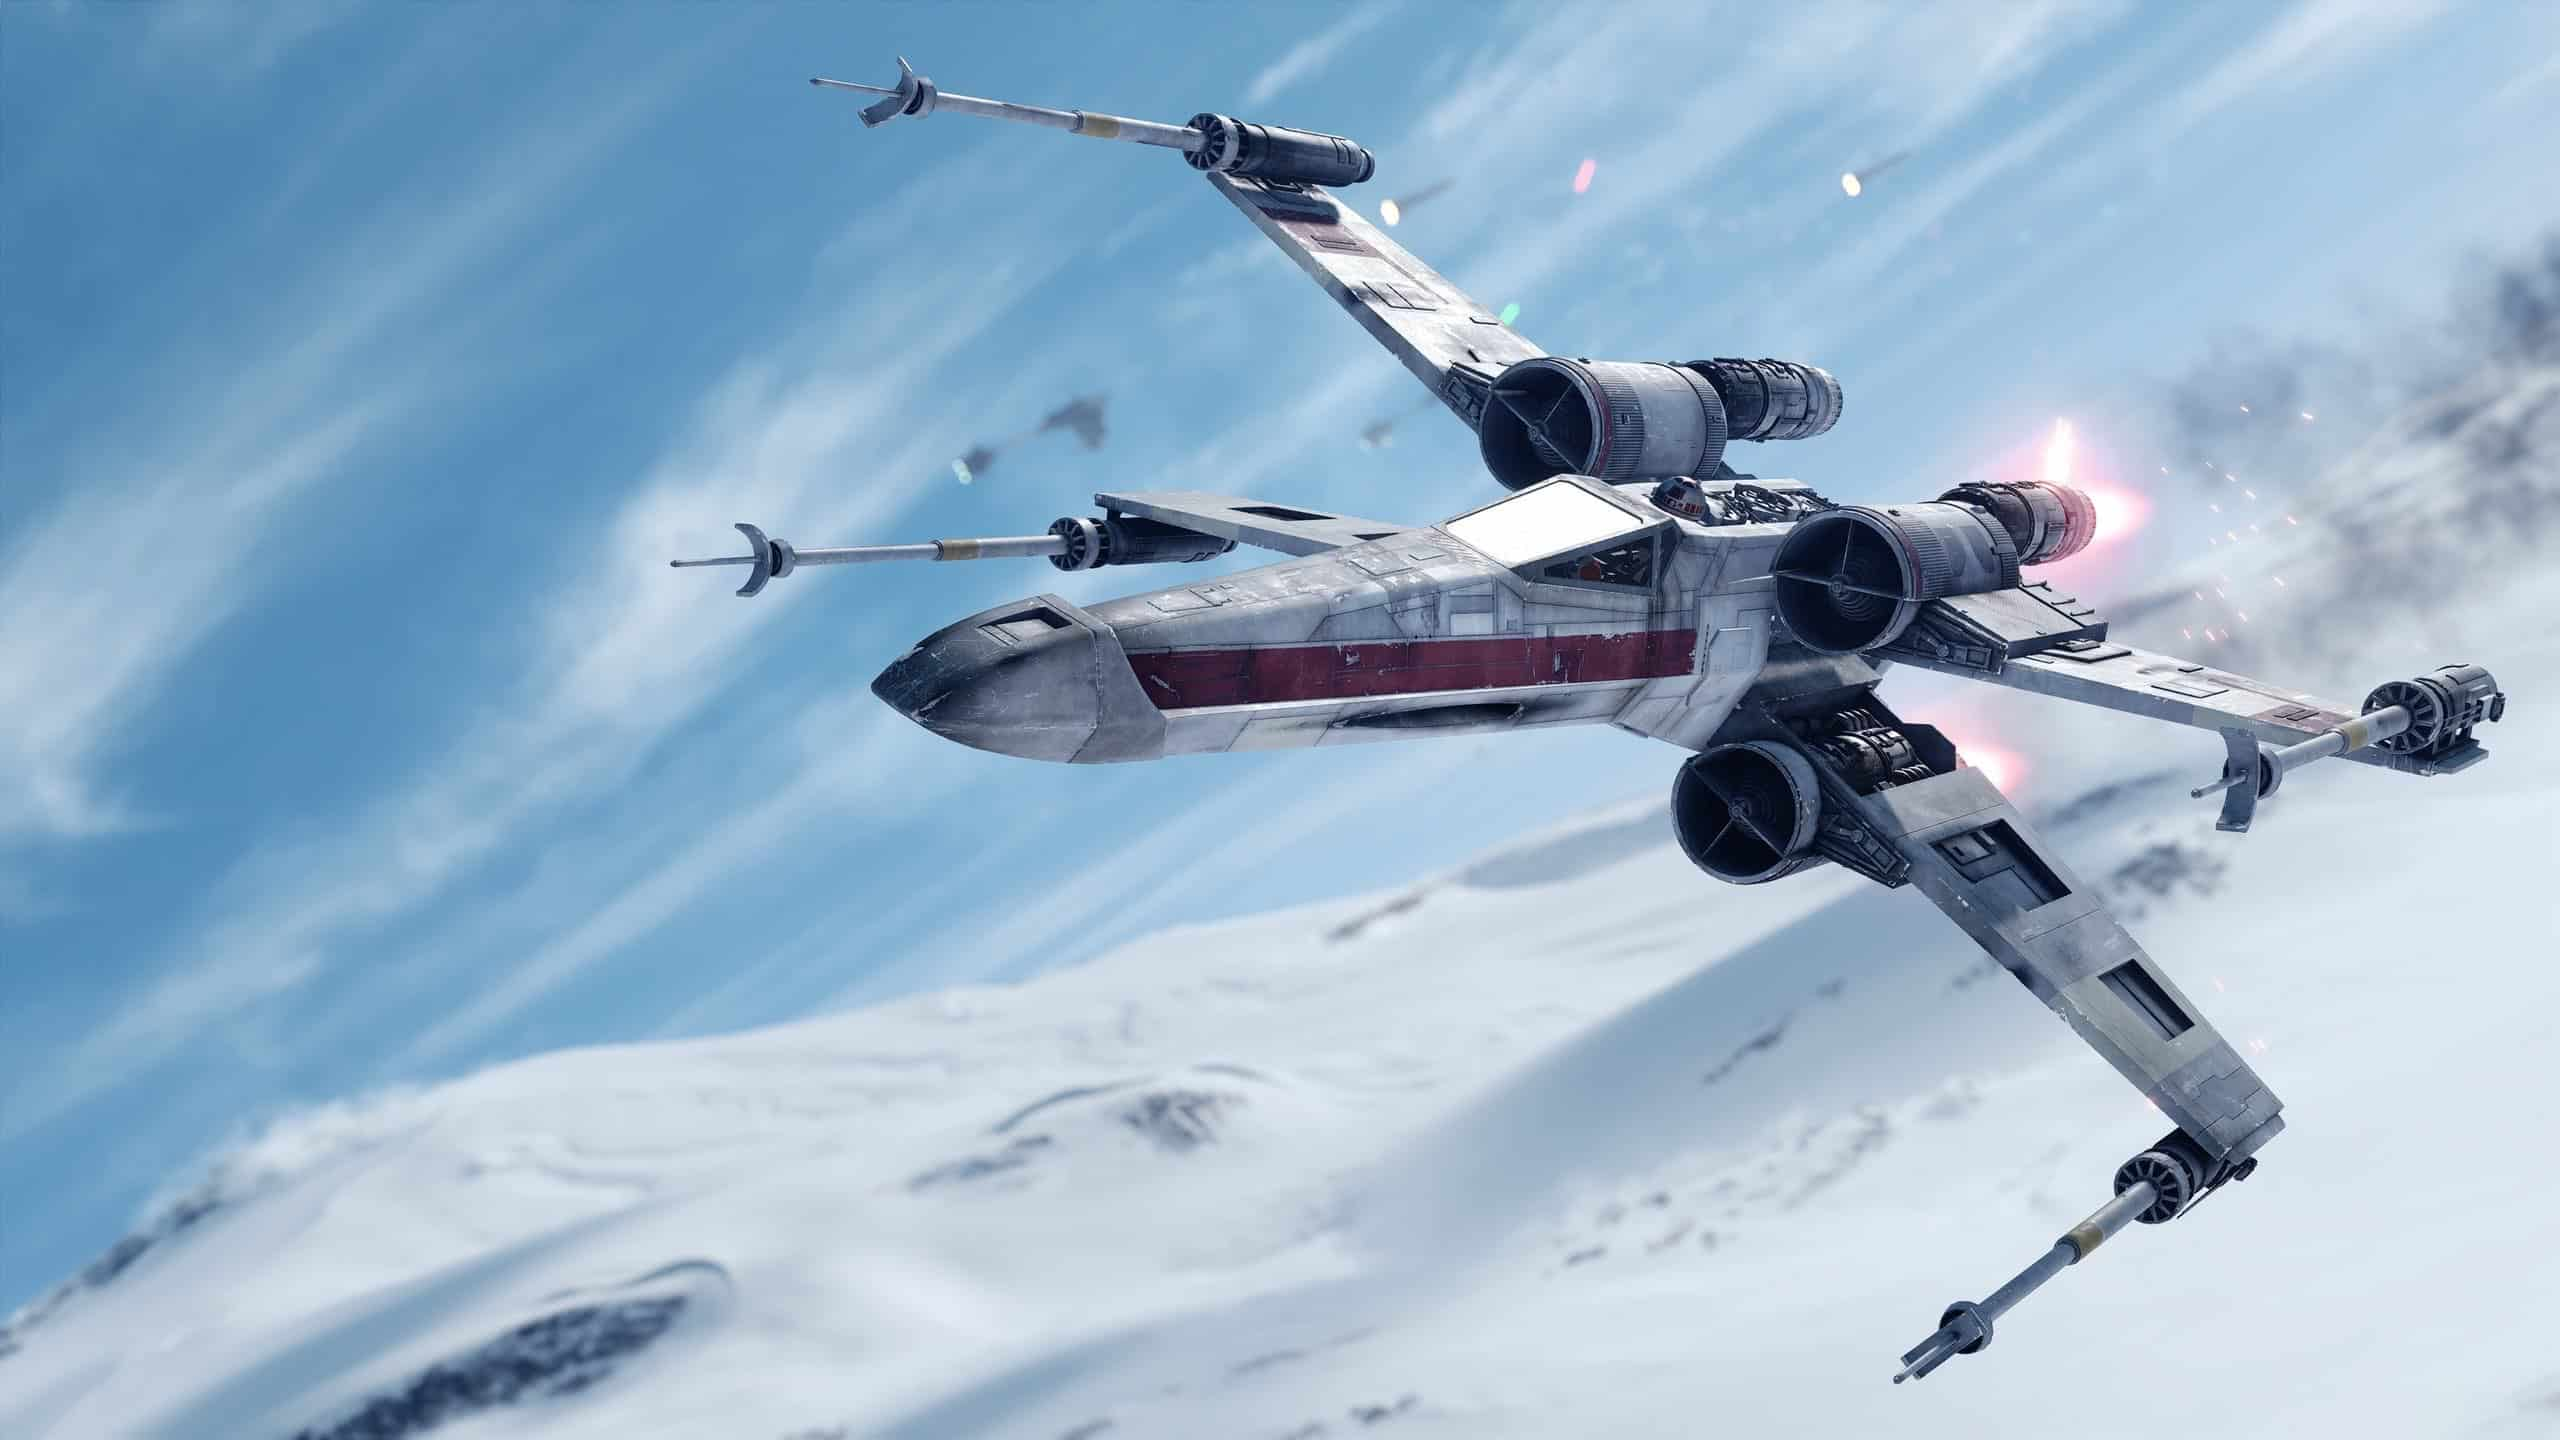 Star Wars X Wing Wqhd 1440p Wallpaper Pixelz